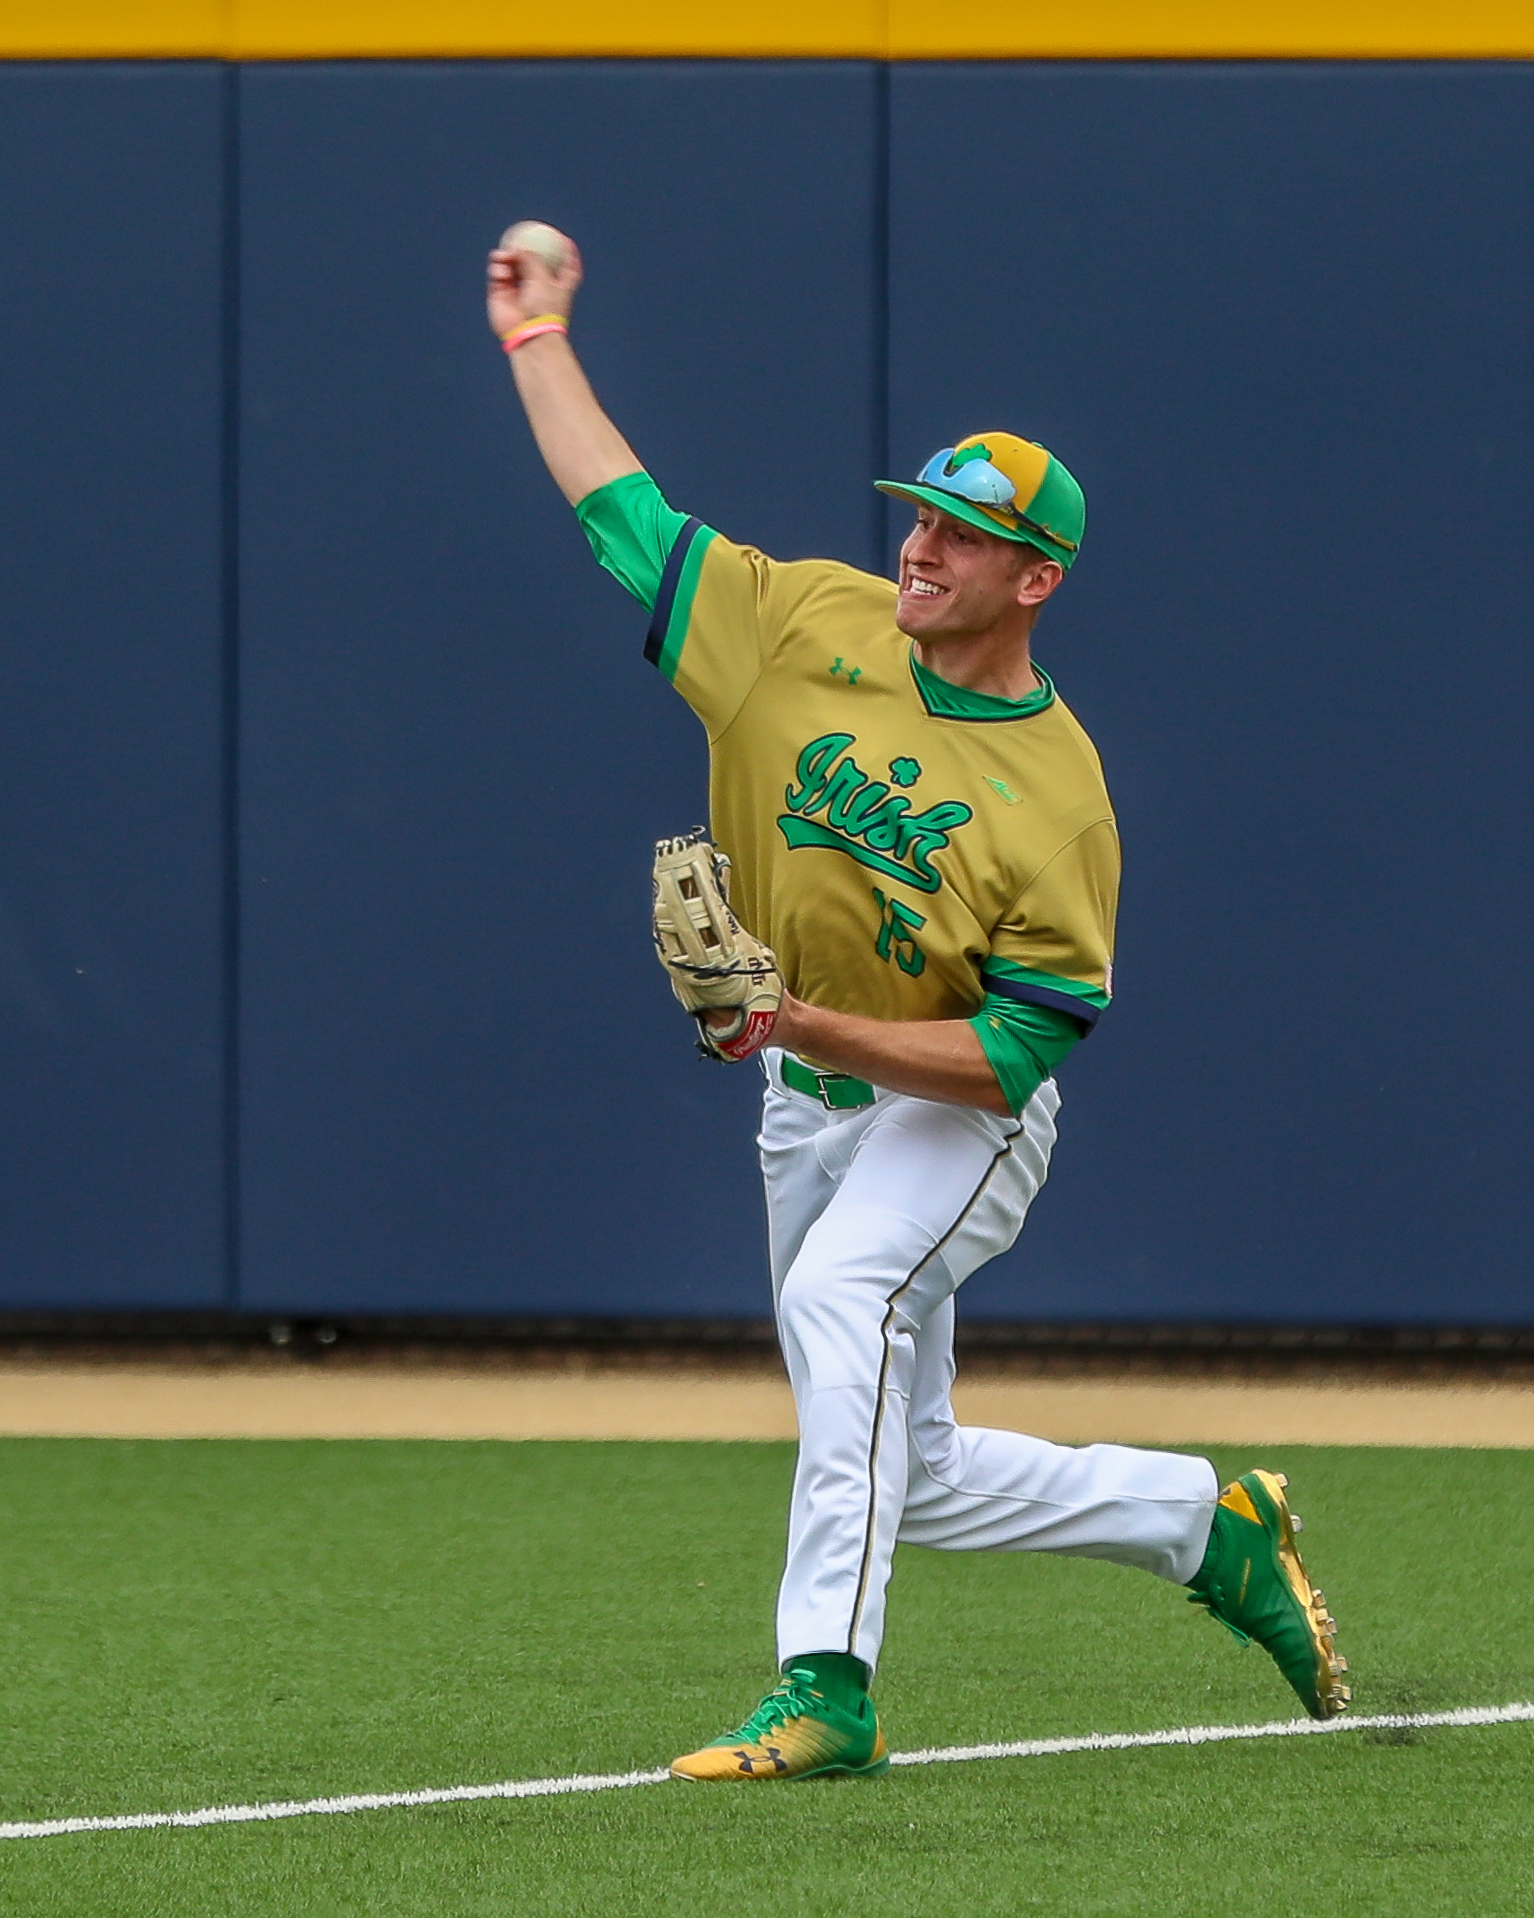 separation shoes 98431 93327 Notre Dame releases 2019 Schedule - College Baseball Daily